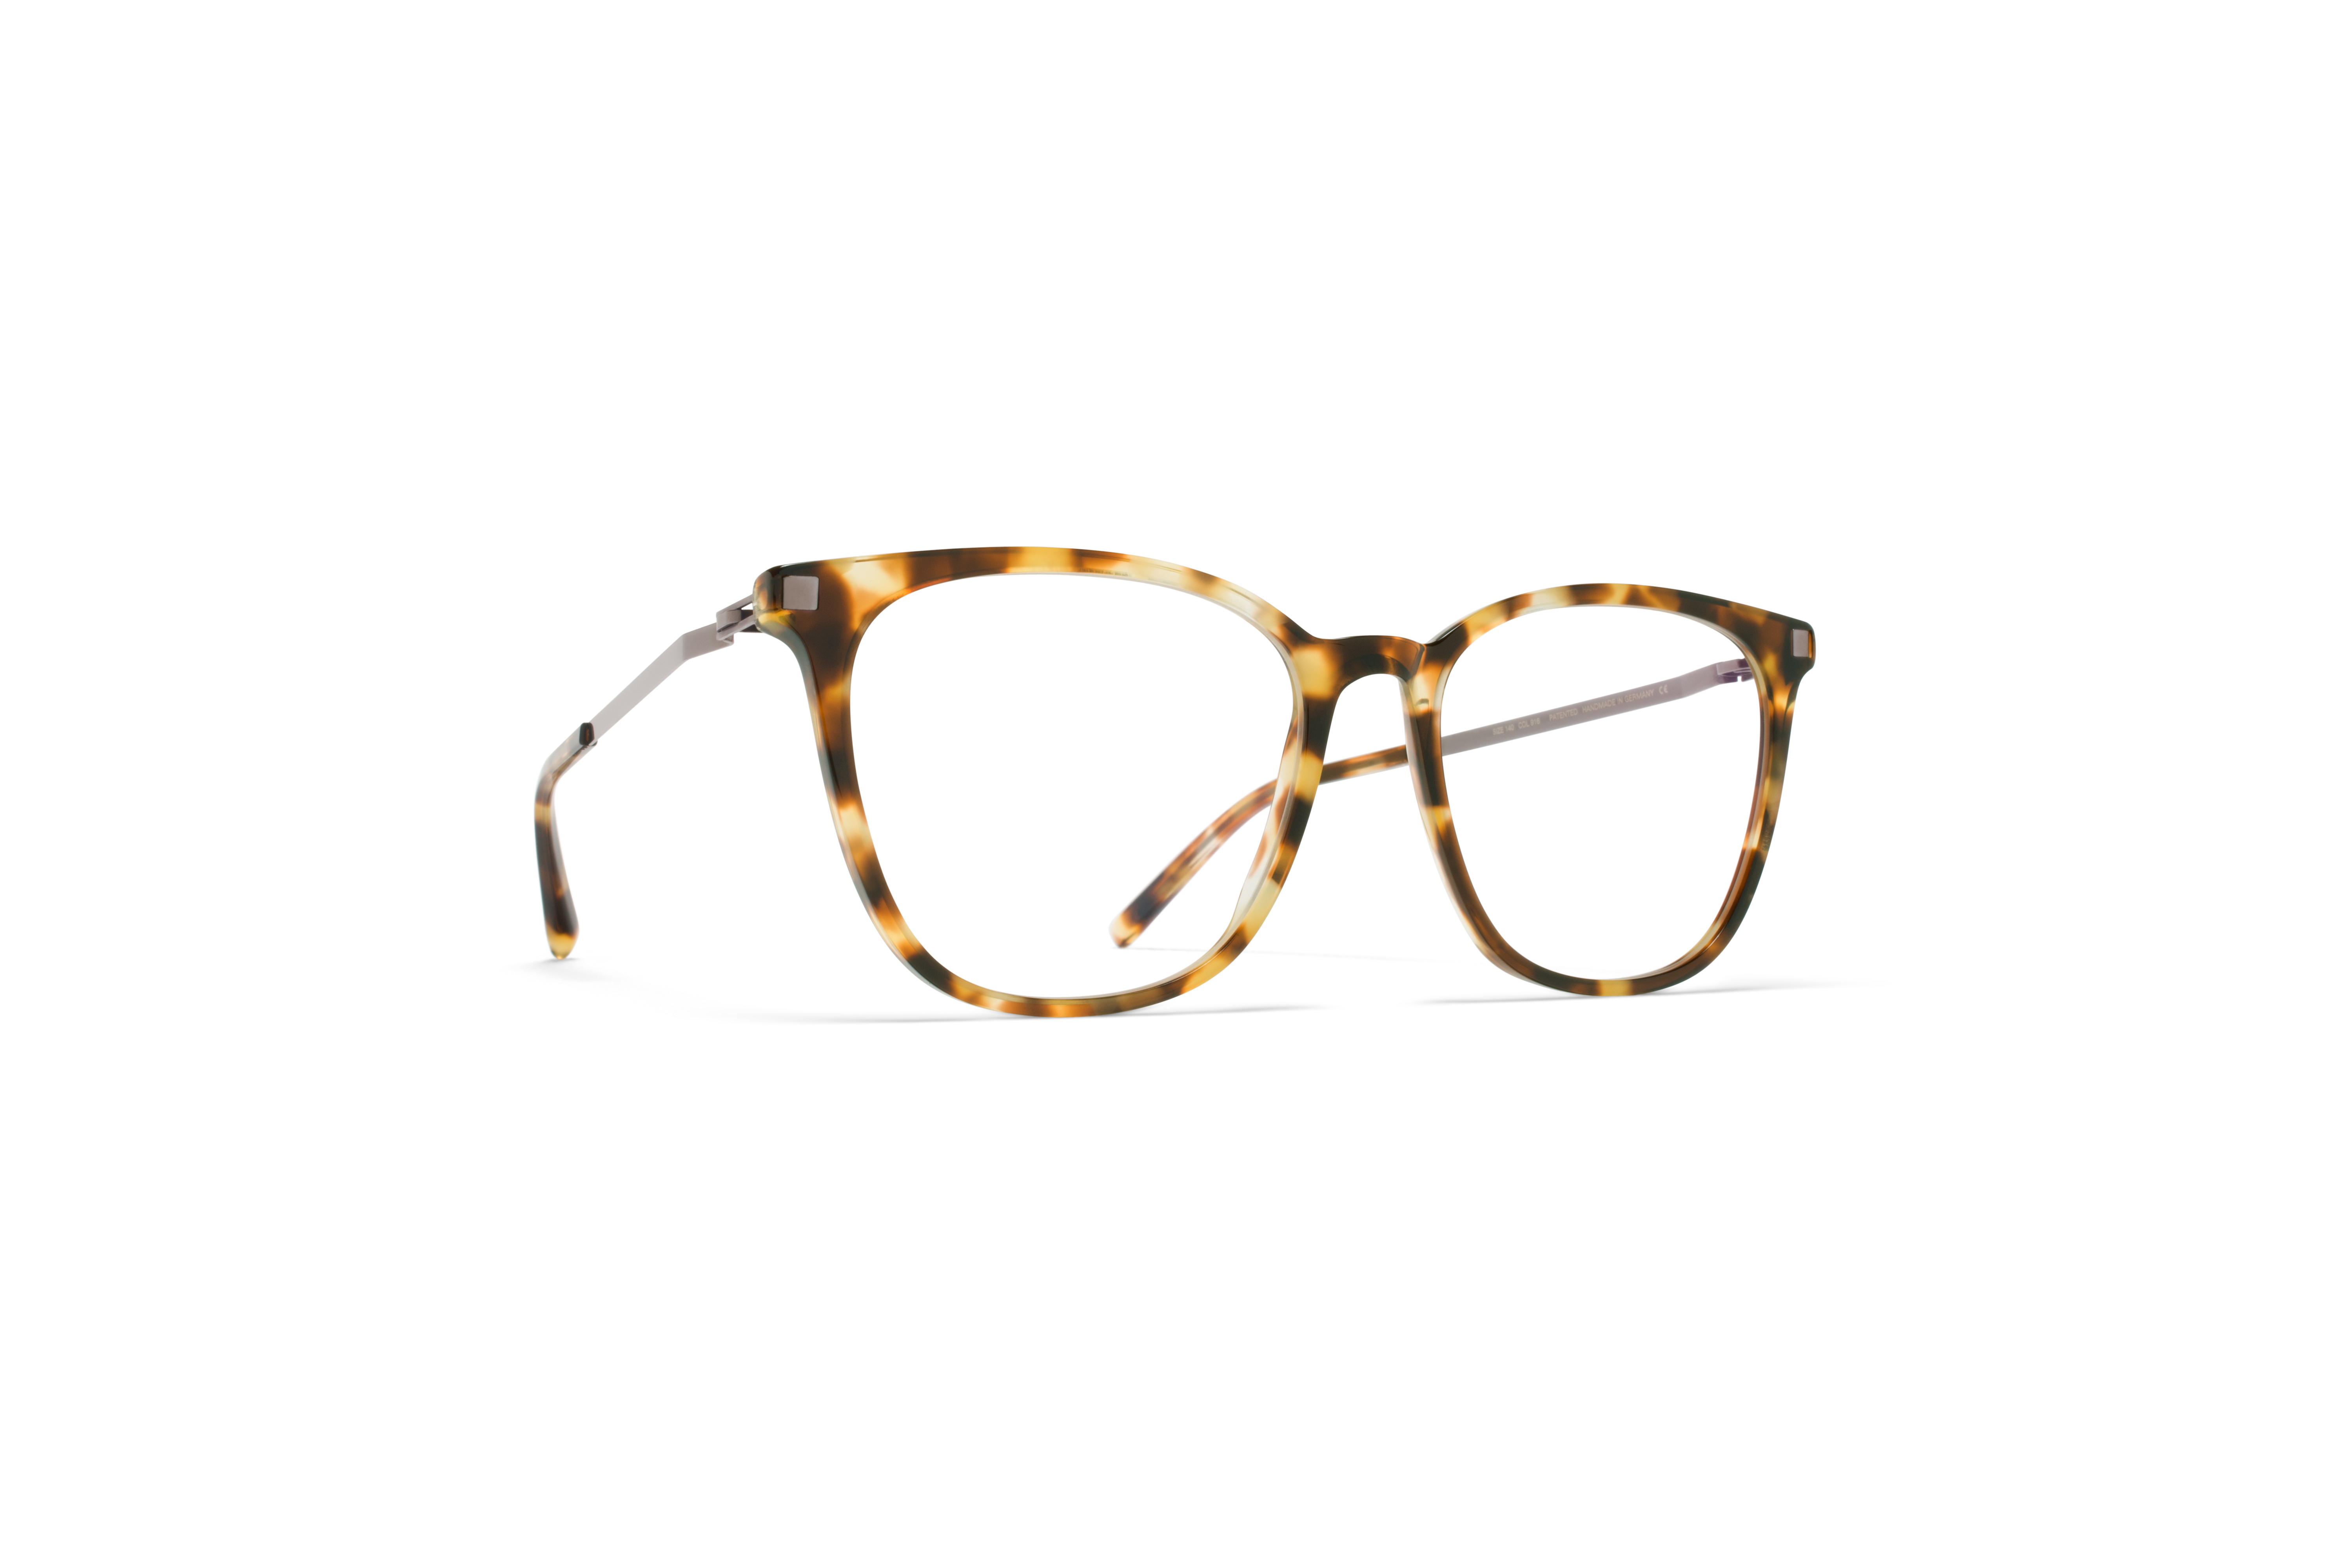 MYKITA Lite Acetate Rx Zima C3 Cocoa Sprinkles Shi58d30d361aab7